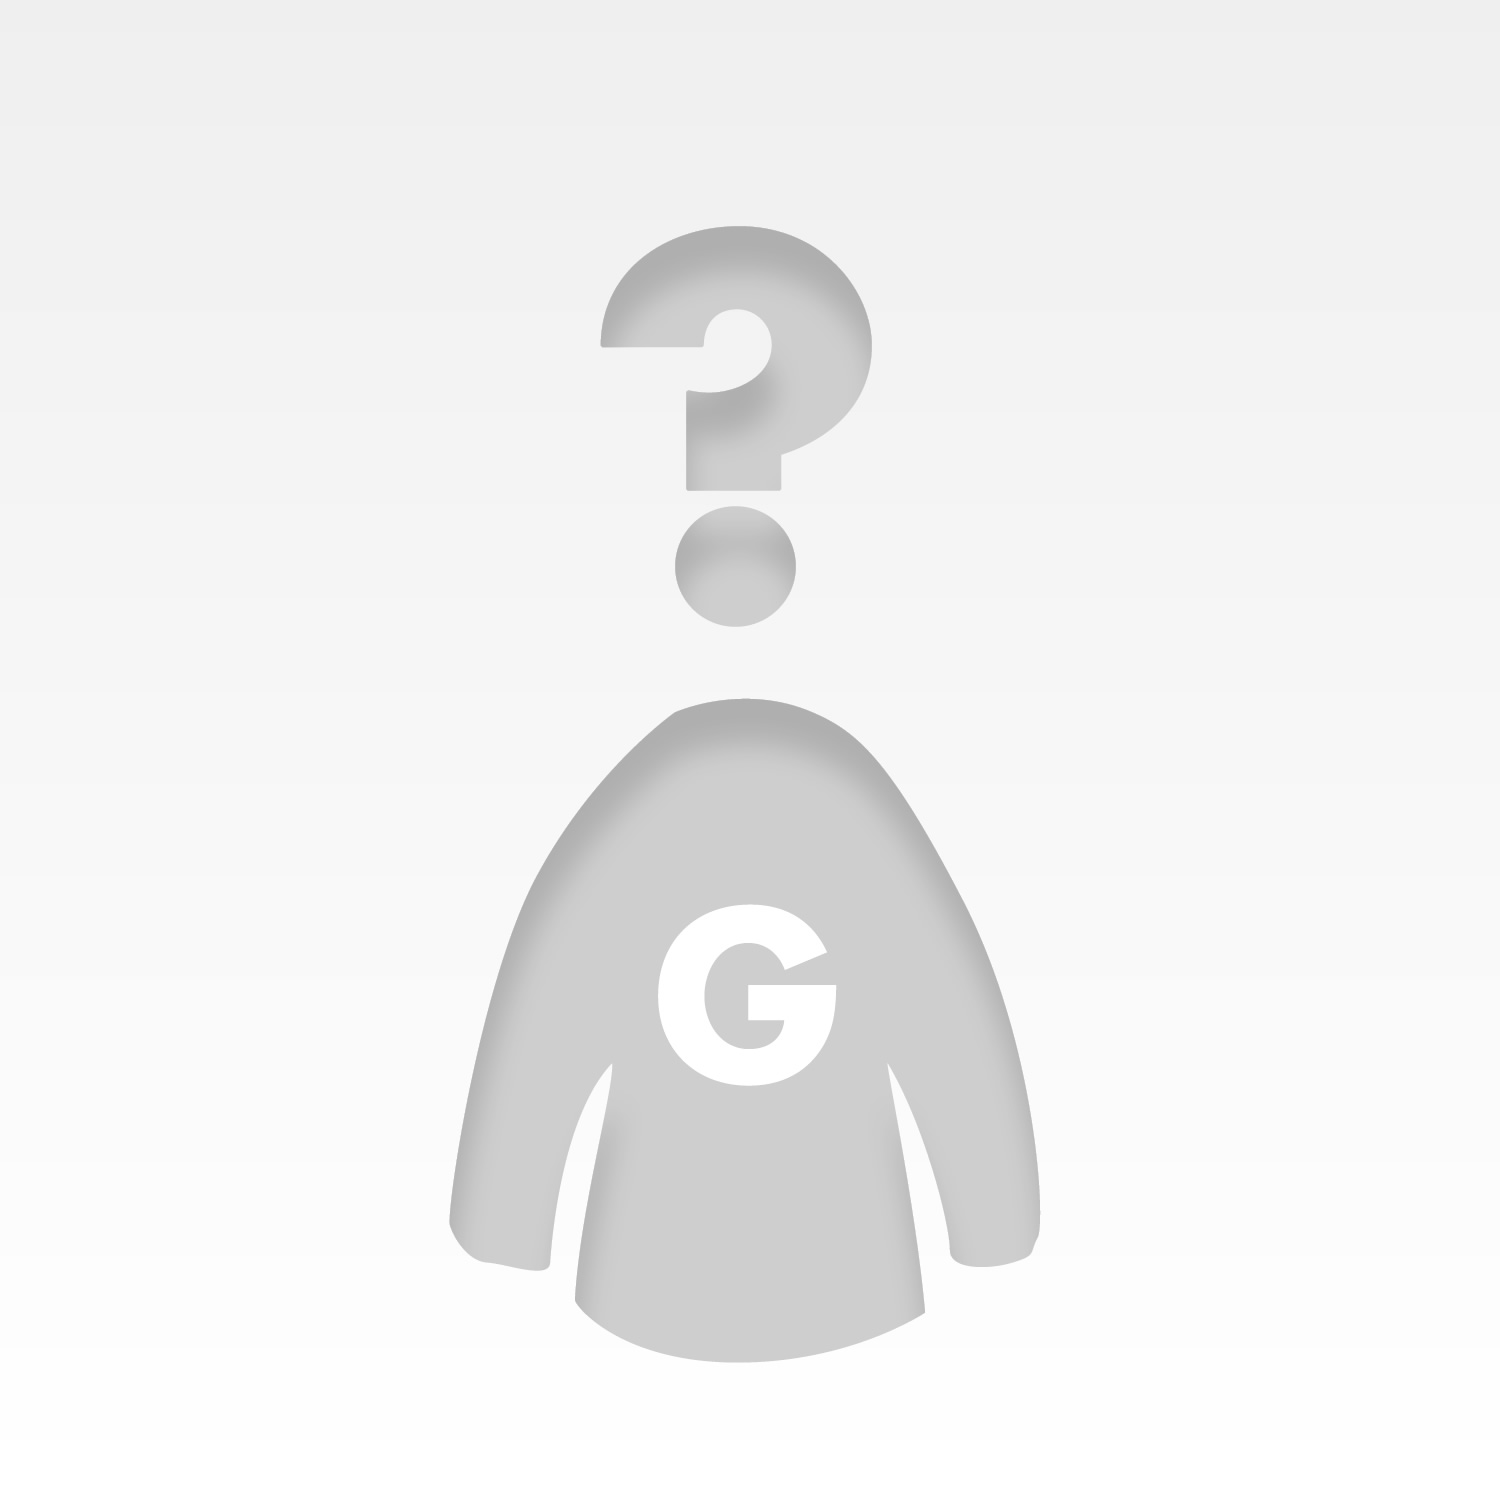 Whatisthis\'s avatar